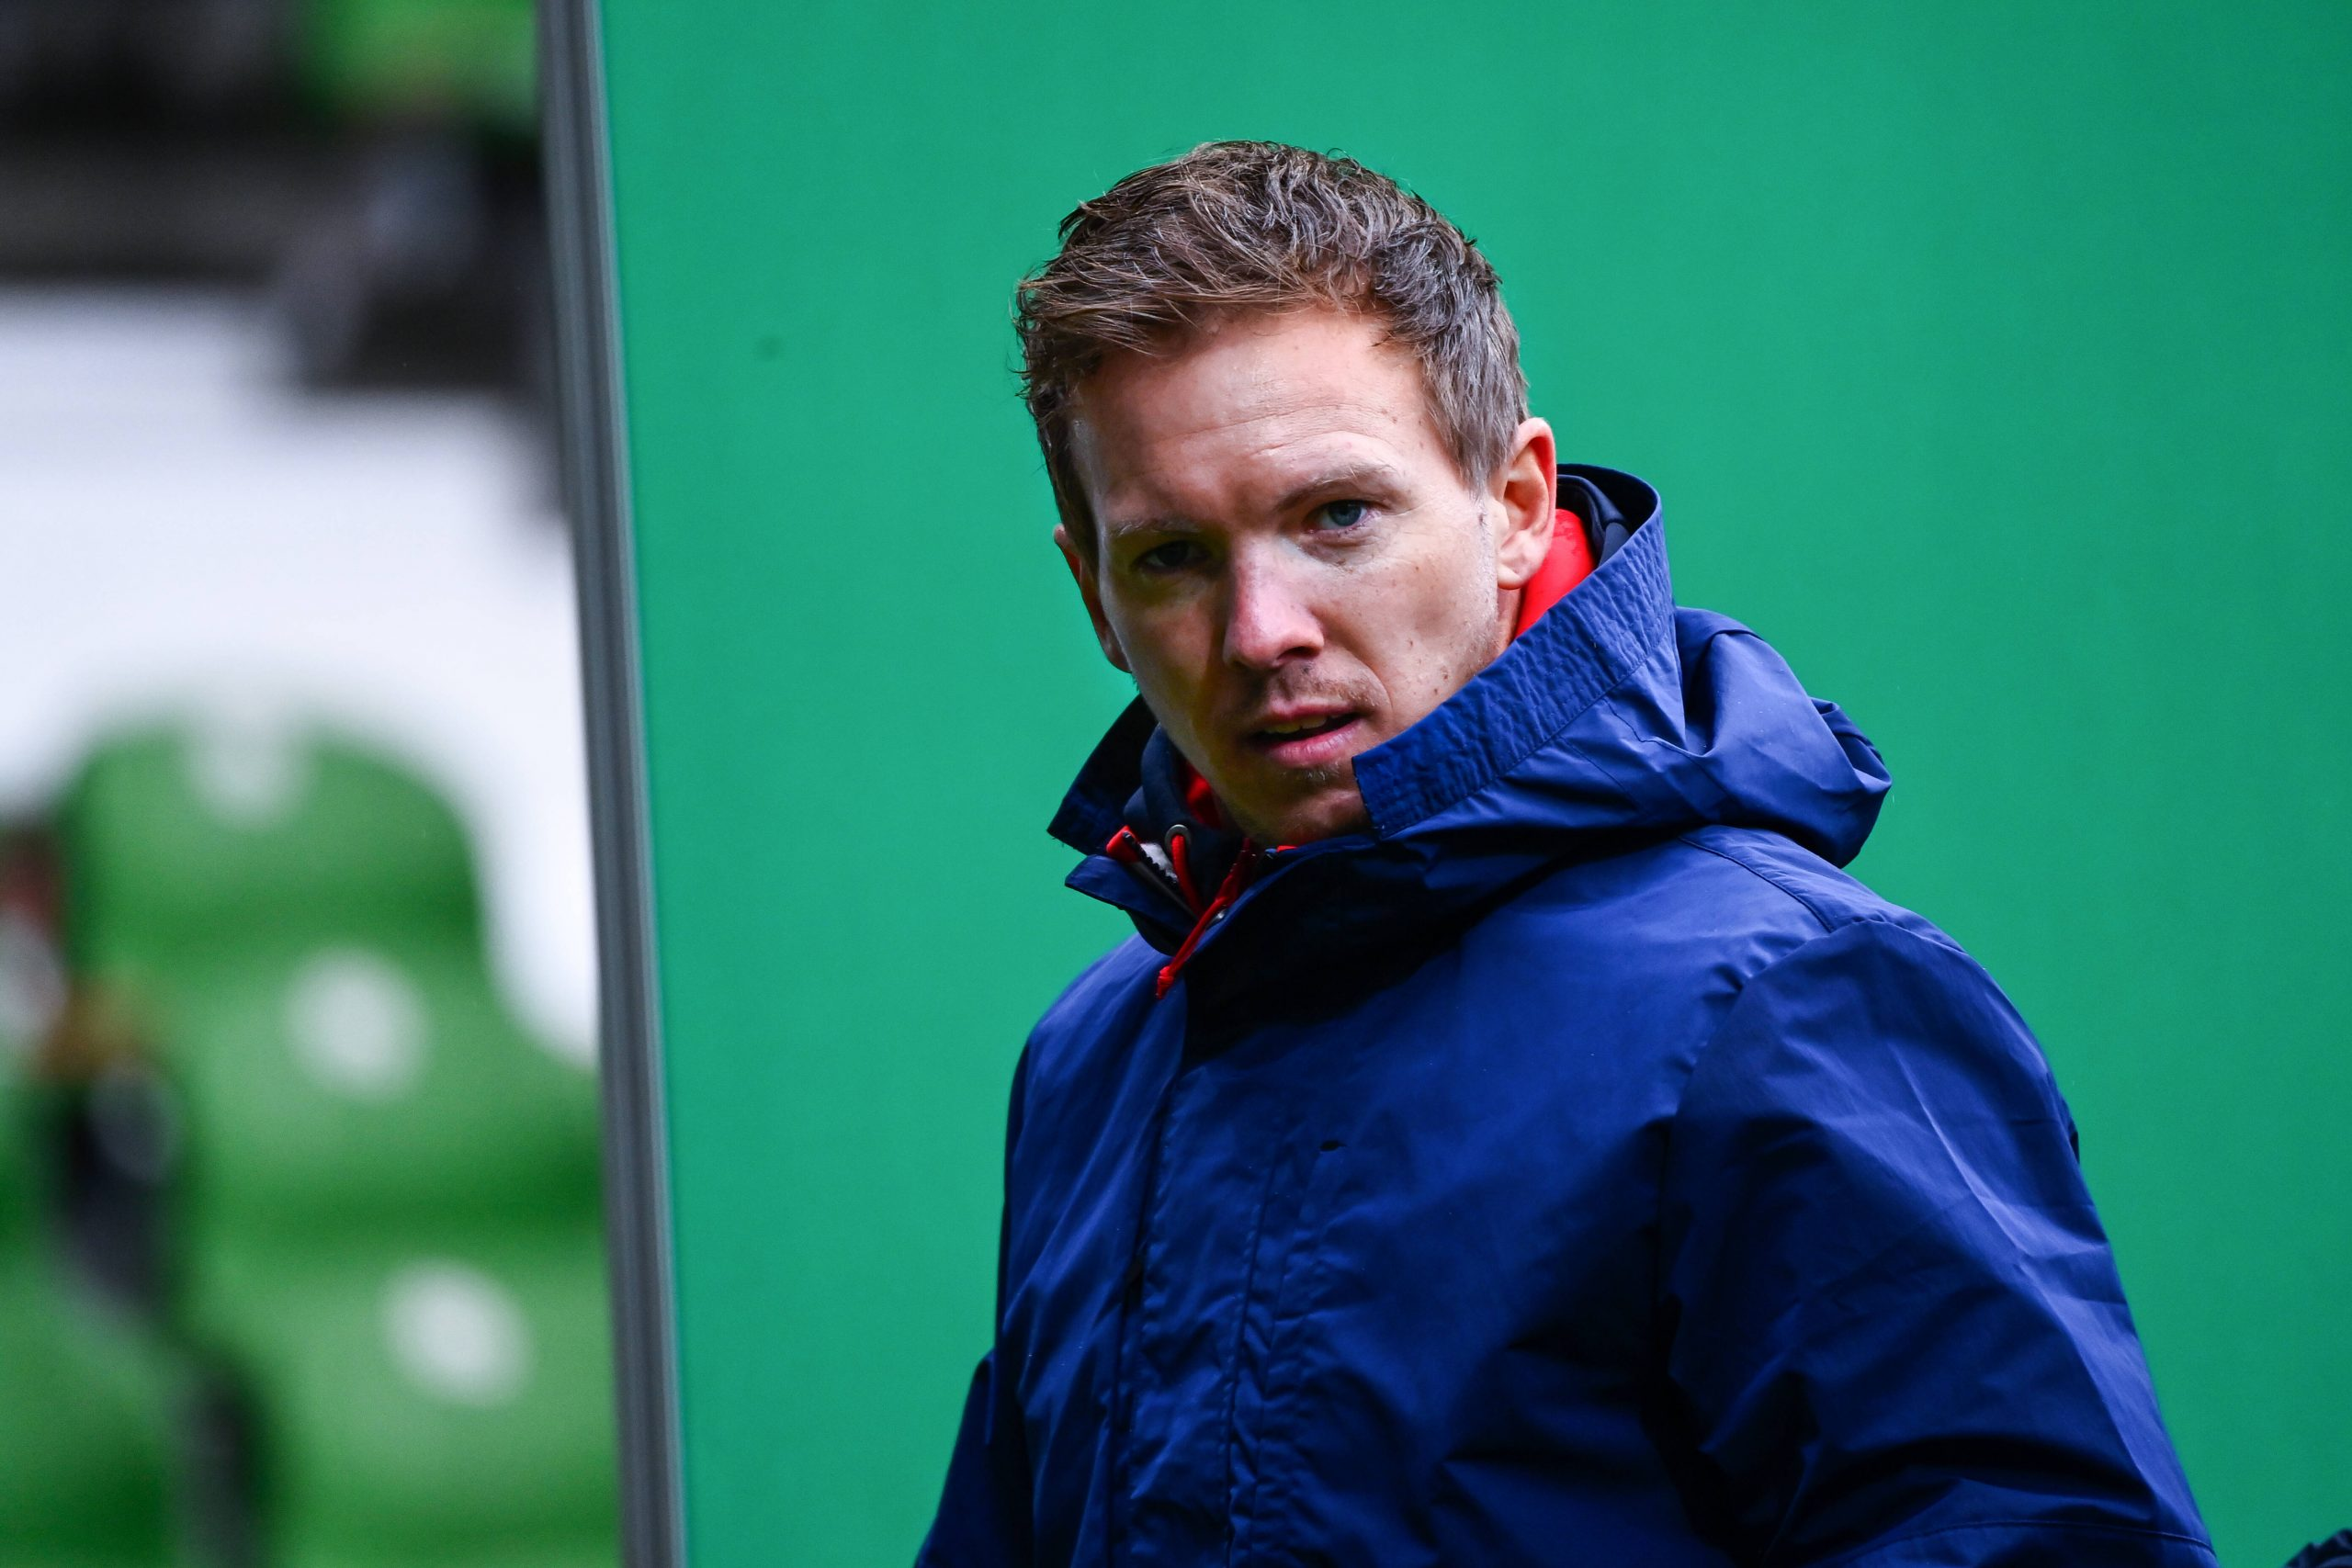 Julian Nagelsmann was linked with Tottenham Hotspur but has now signed a deal to become the manager of Bayern Munich.